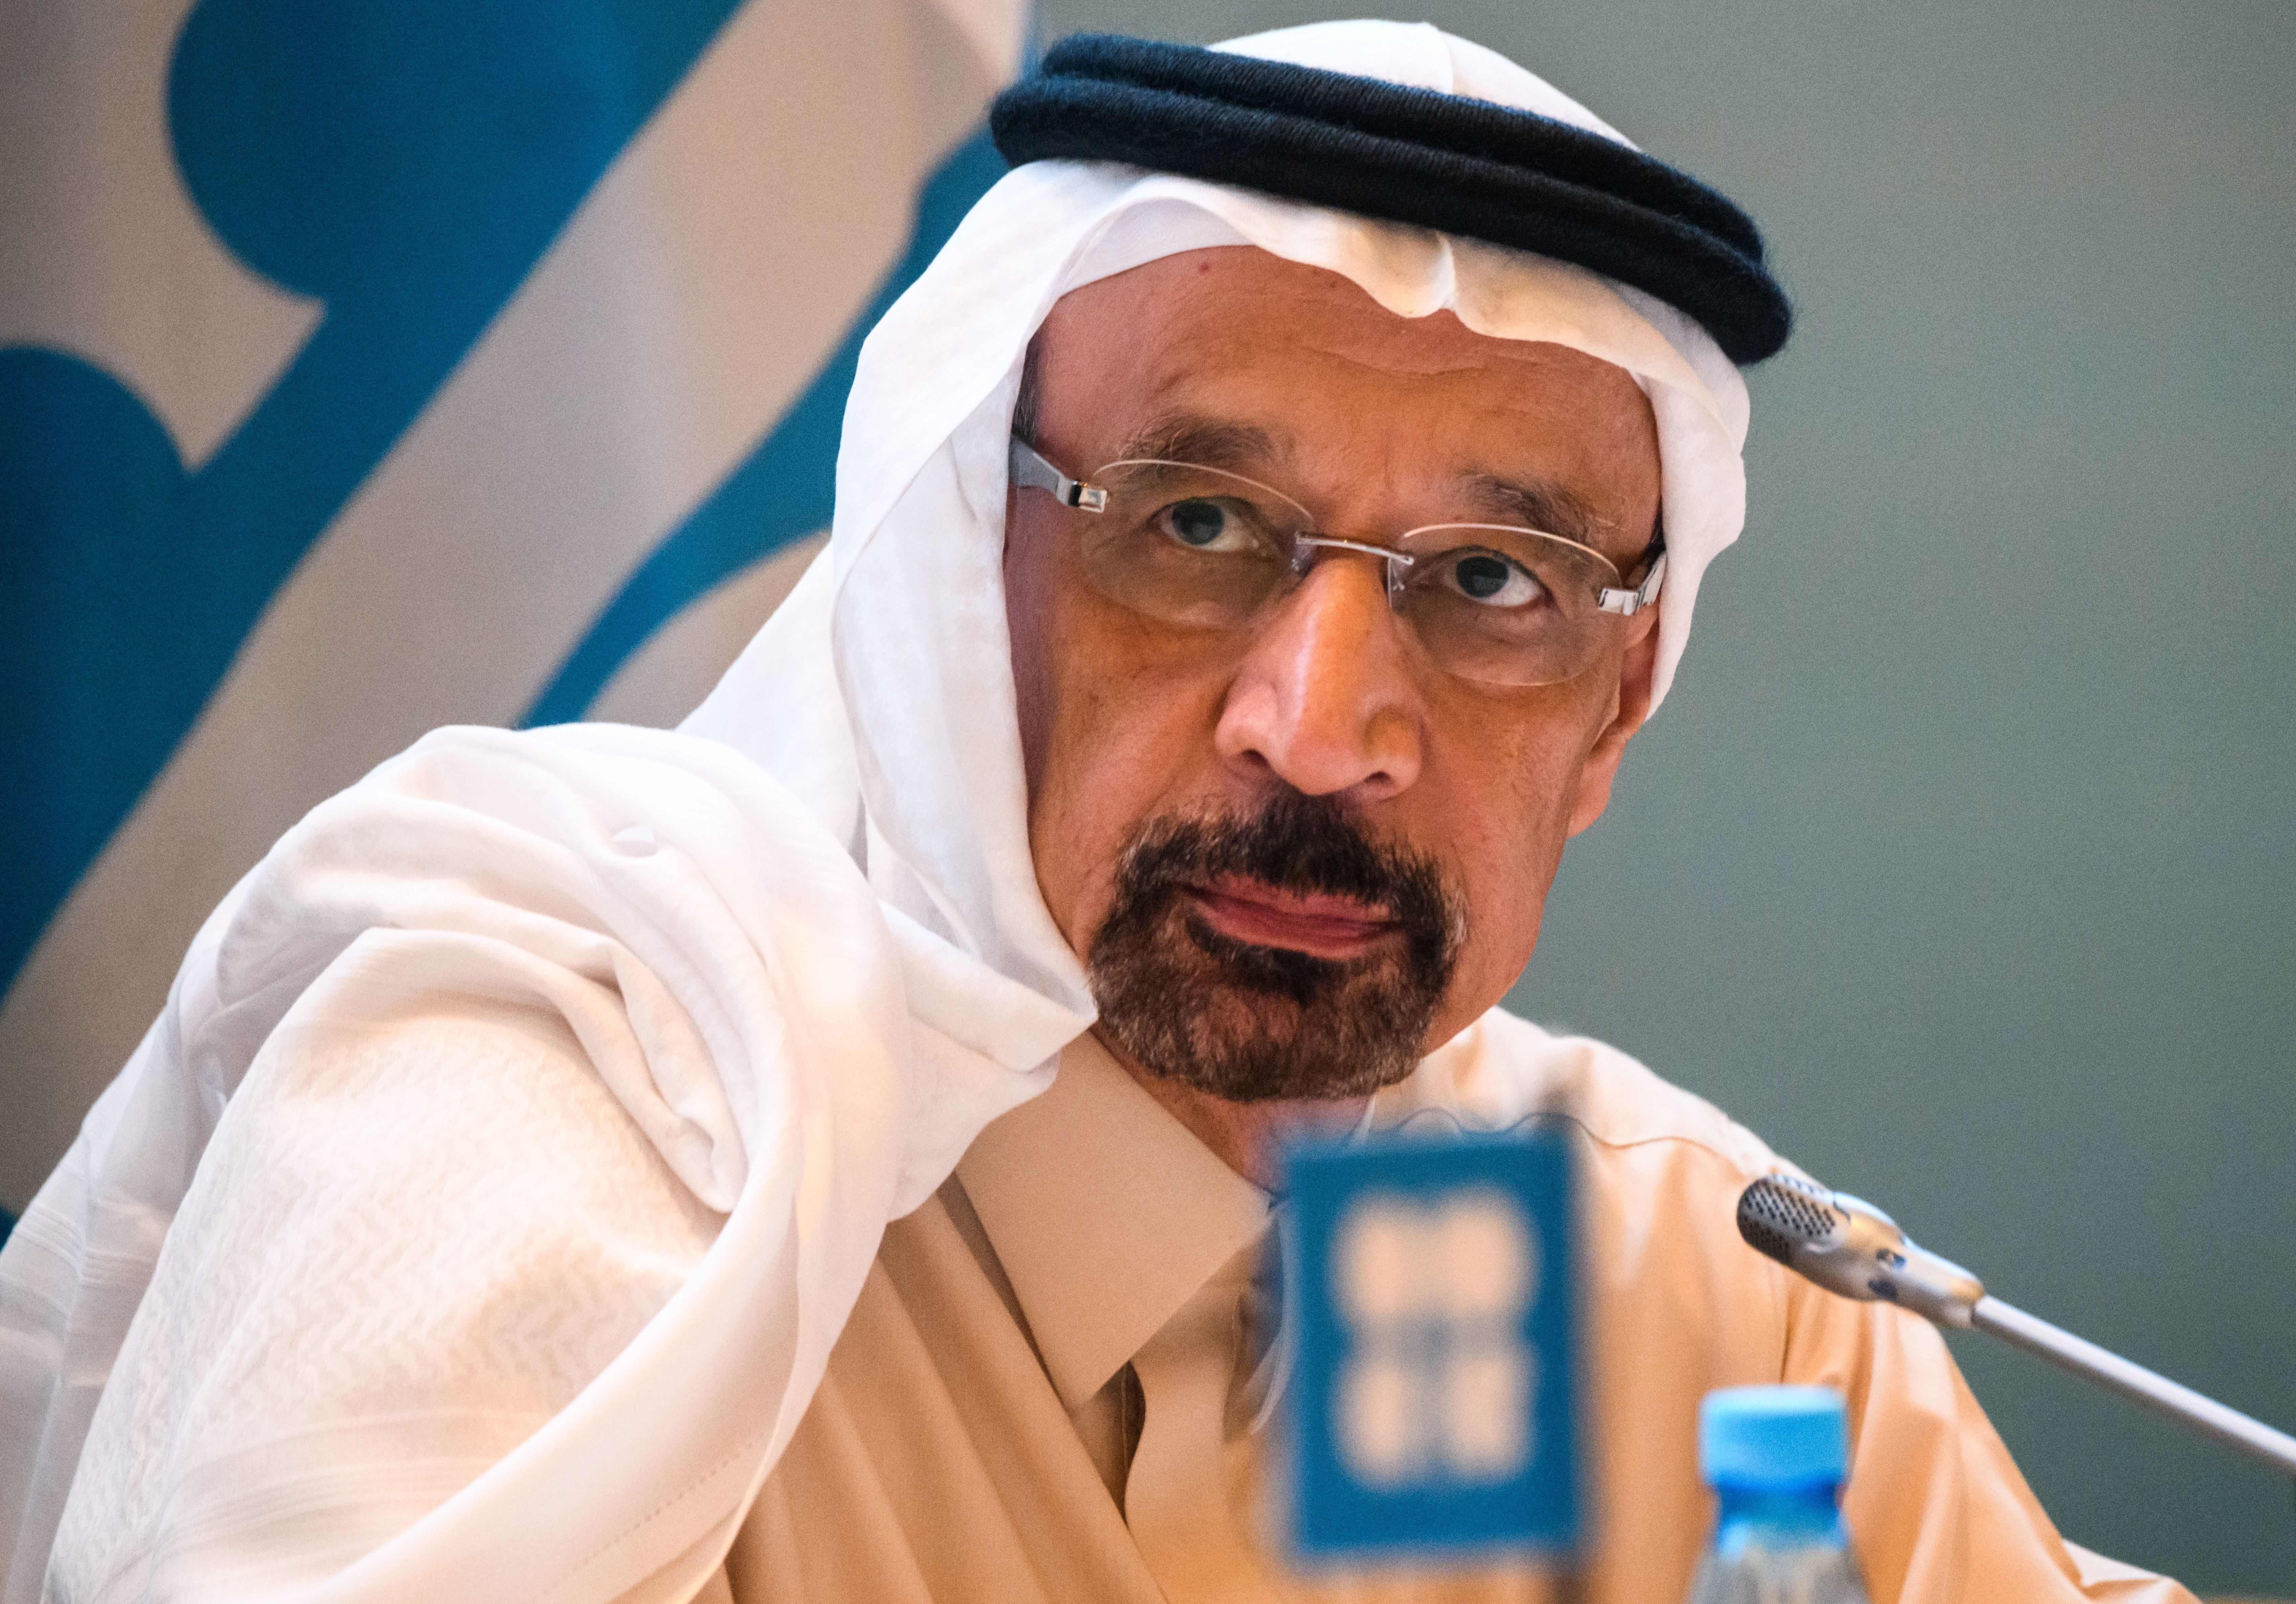 Saudi Energy Minister: two Saudi oil tankers attacked near